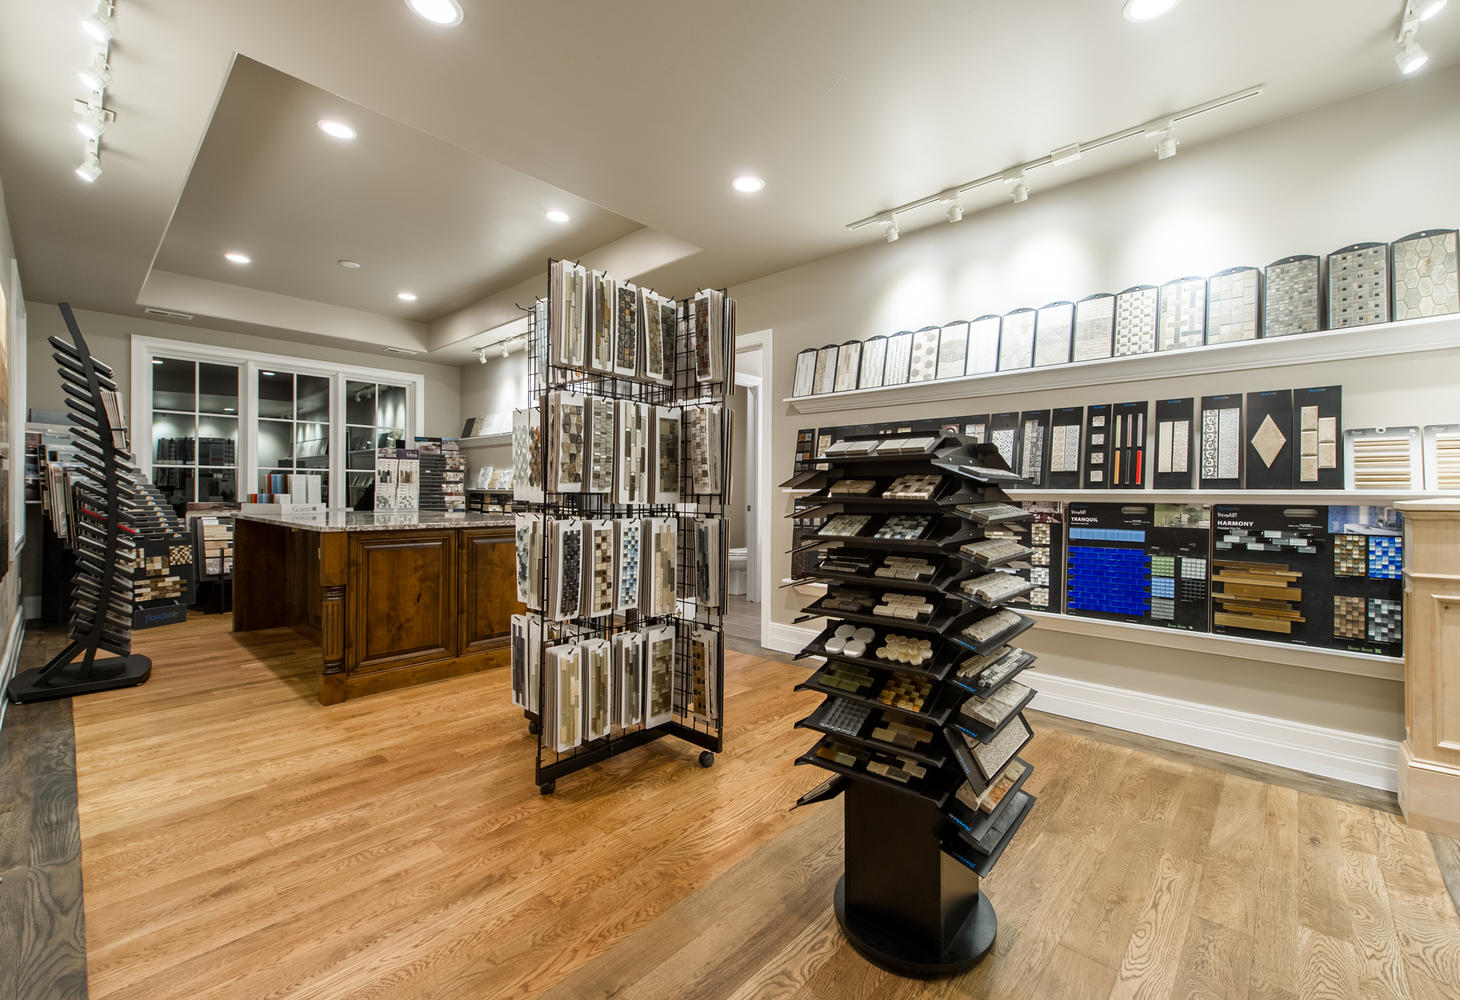 Pictured: New Design Center at Colorado Golf Club and Betts Lake home listed by LIV Sotheby's International Realty priced from $1.34M.